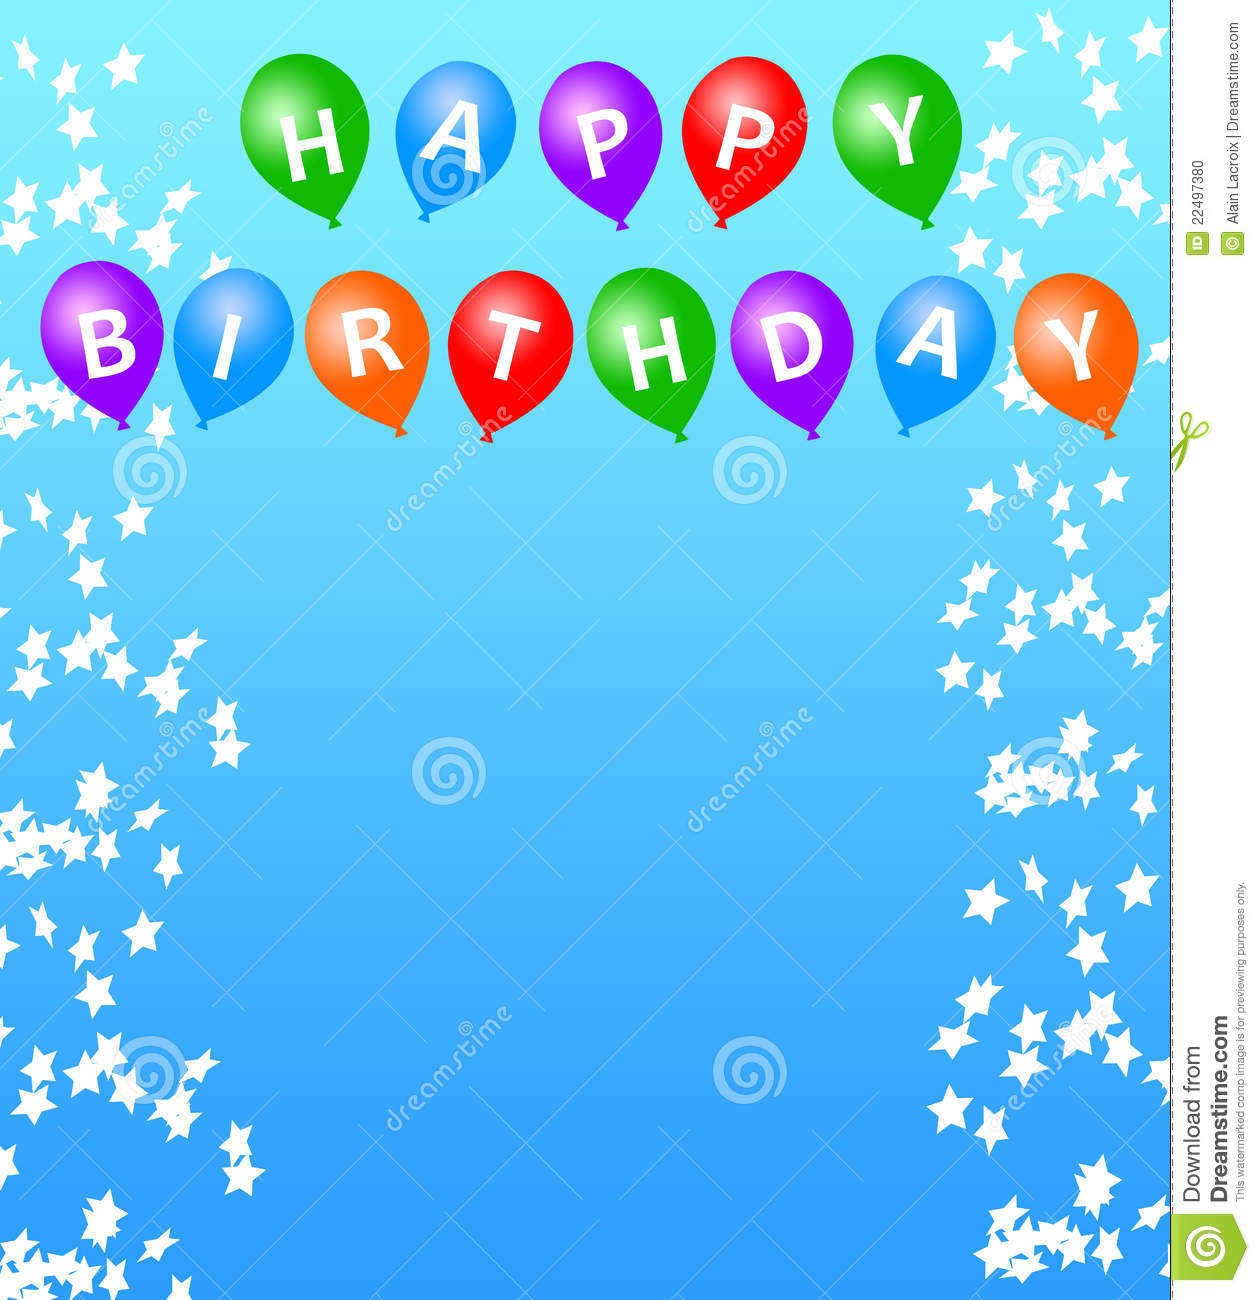 Happy birthday stock illustration. Illustration of birthday - 22497380